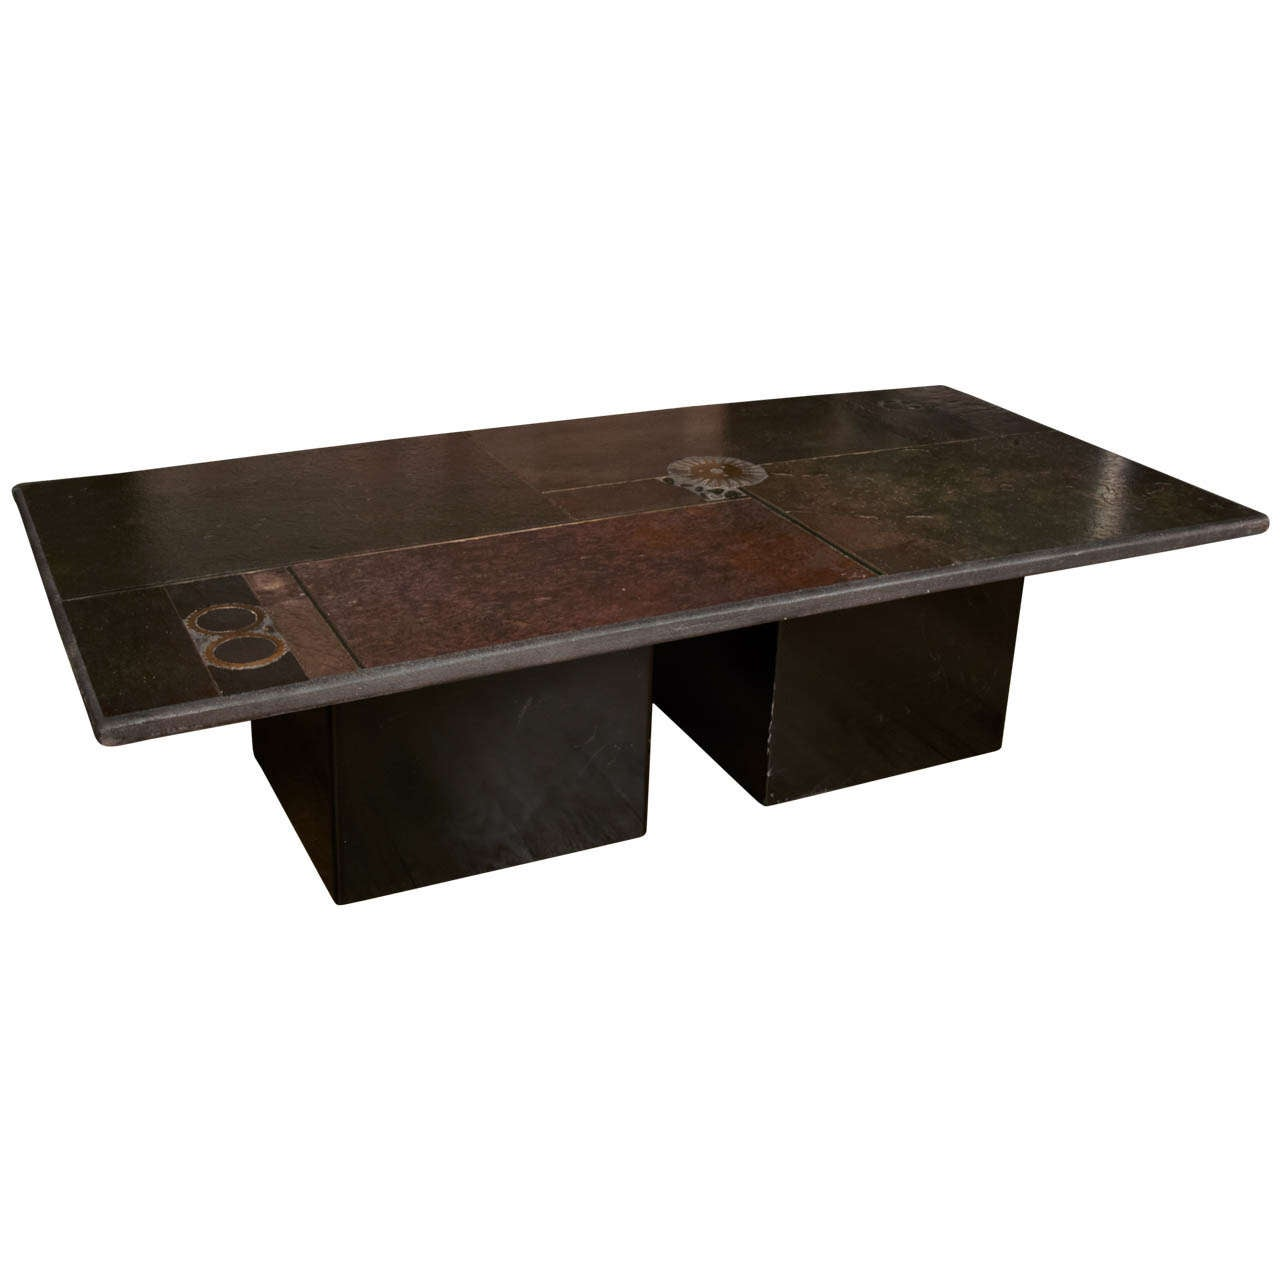 Paul kingma coffee table with slate stone top and brass inlay circa 1980 at 1stdibs Stone coffee table top